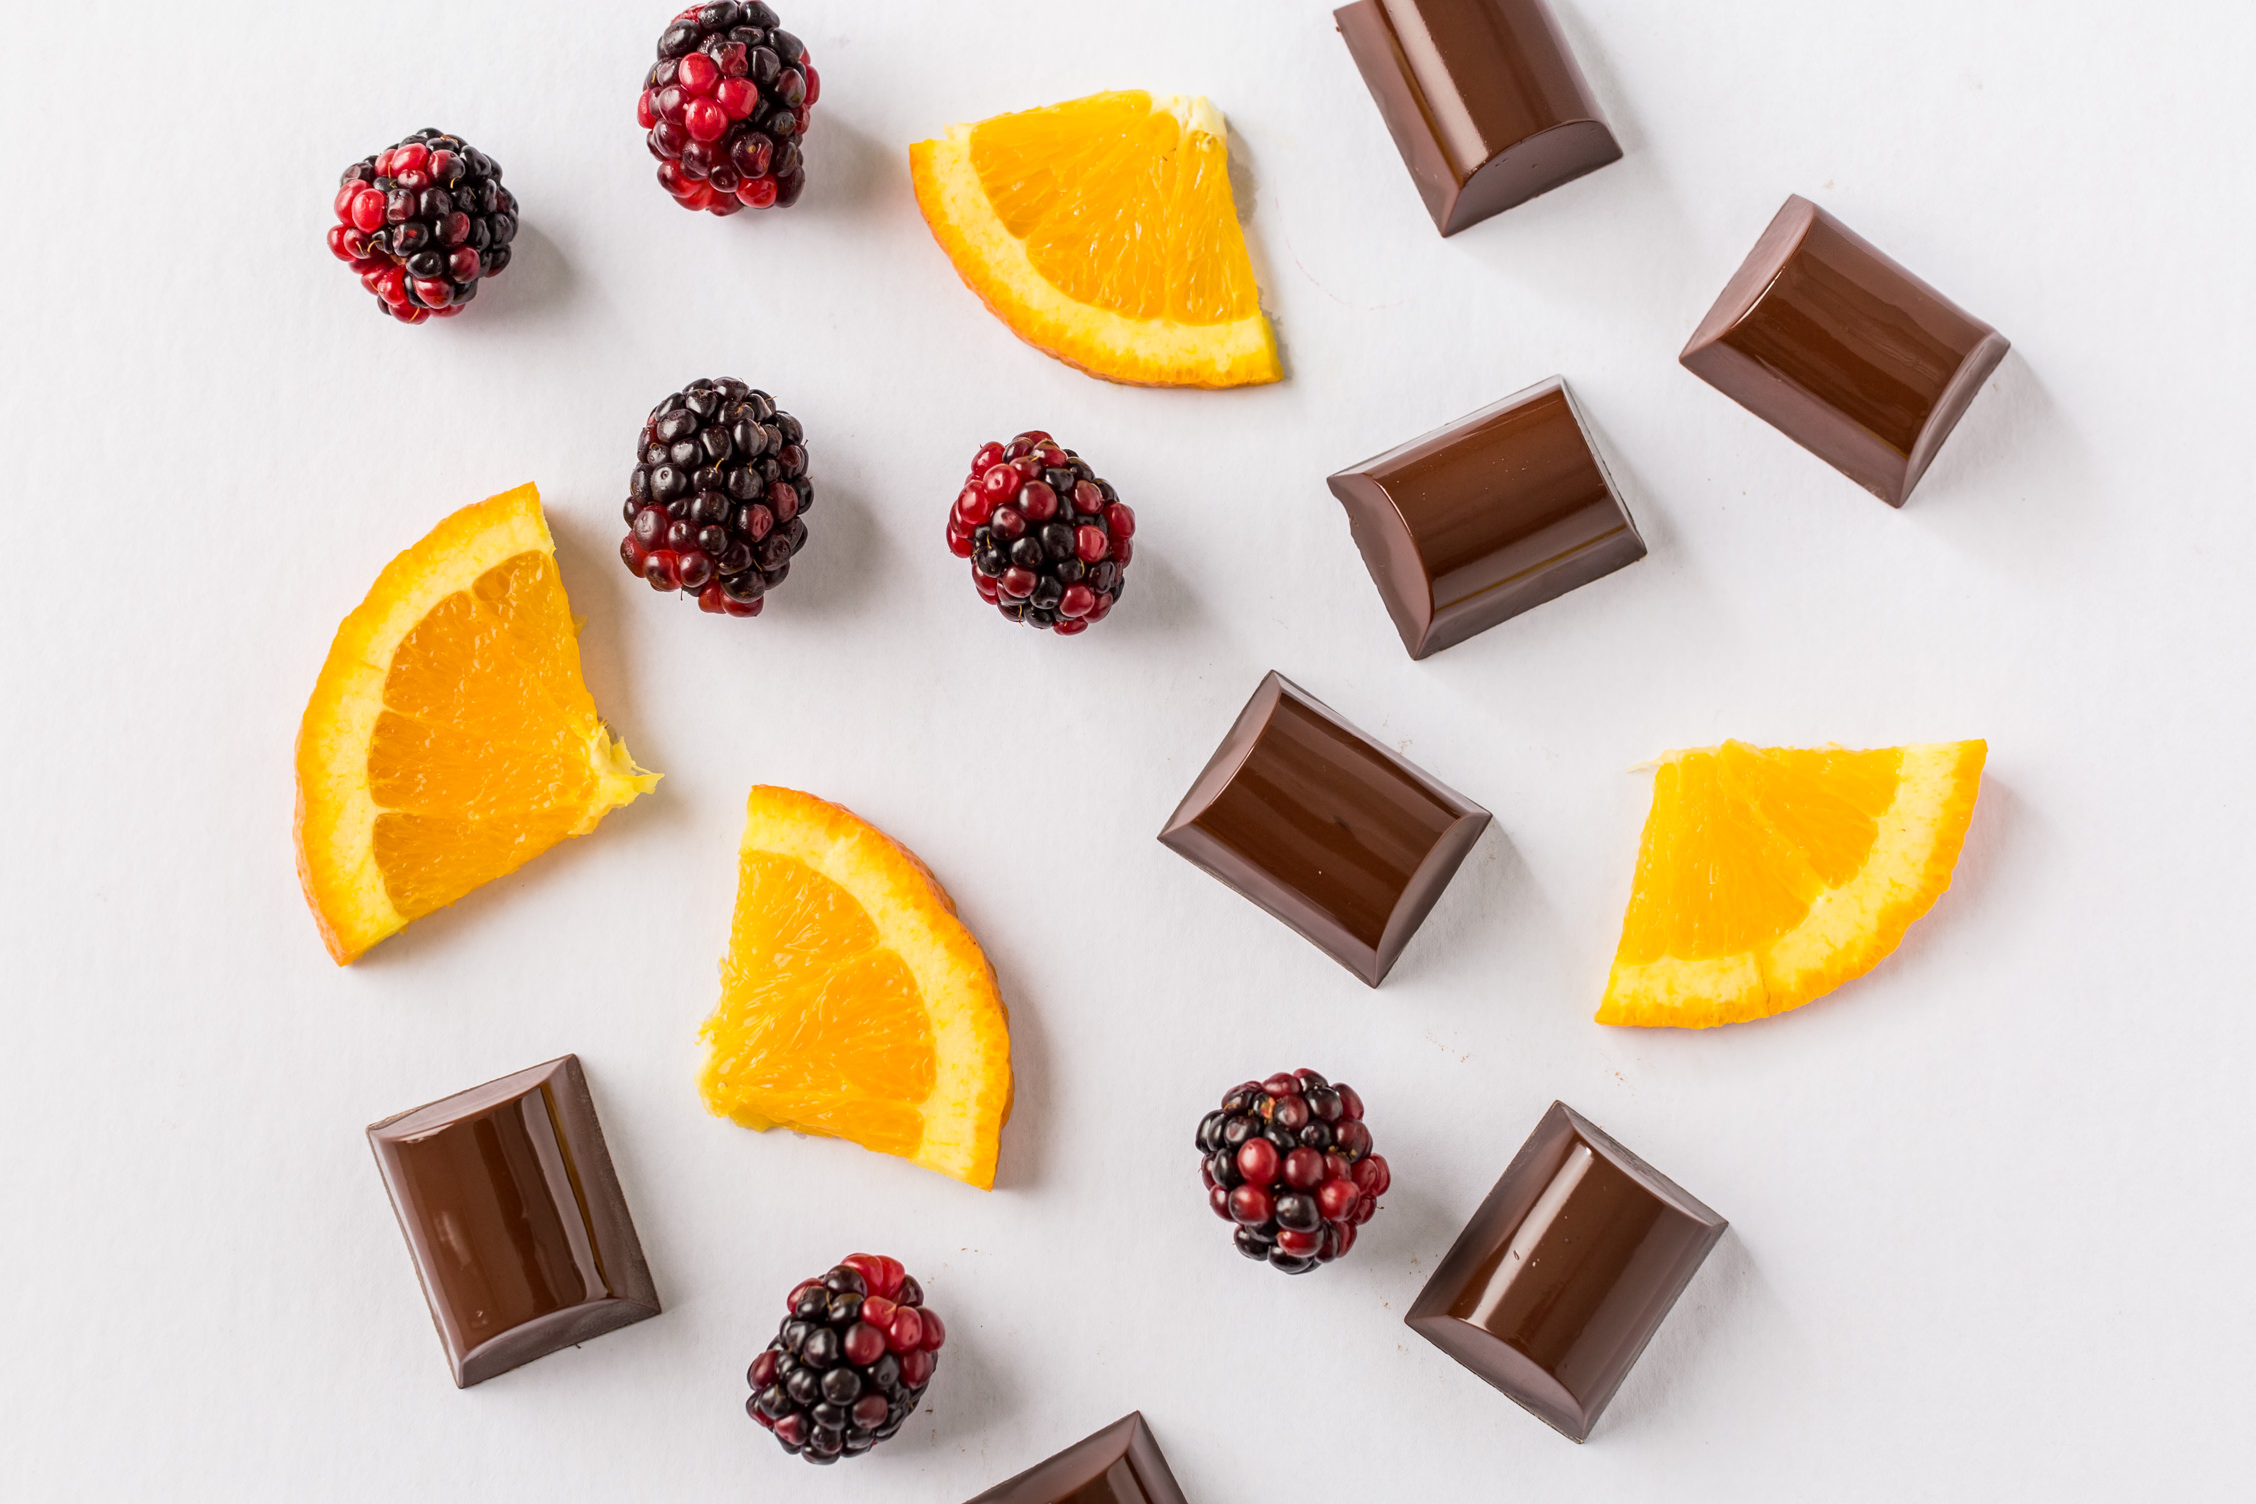 Fruits & Chocolate